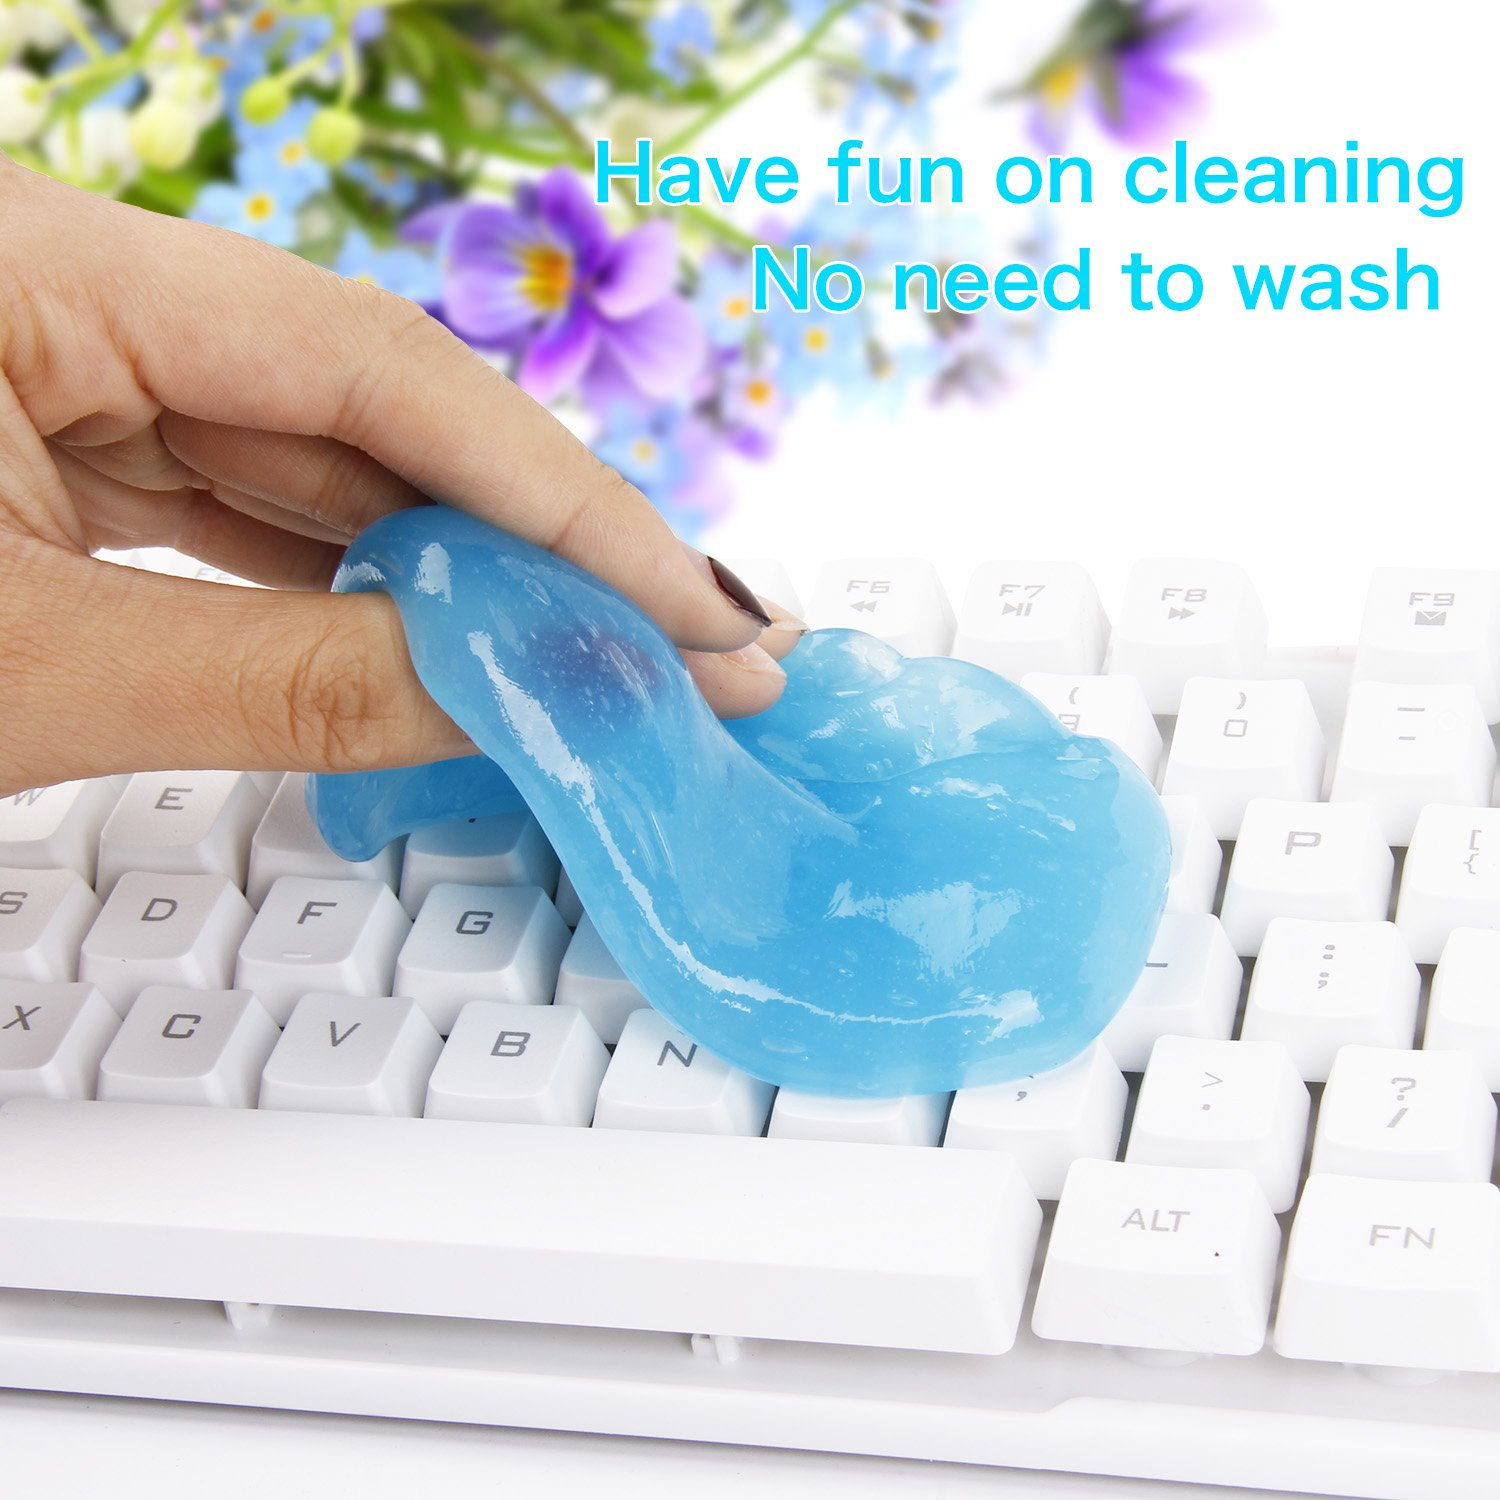 Bedee Keyboard Cleaner (5pcs)+ Storage Box Cyber Cleaning Gel Electronics Clean Putty Slime Home Office Remove Dust, Hair, Crumbs,Dirt from Computer Laptop Keypad, Calculator, Air Vent, Fan, Upgraded